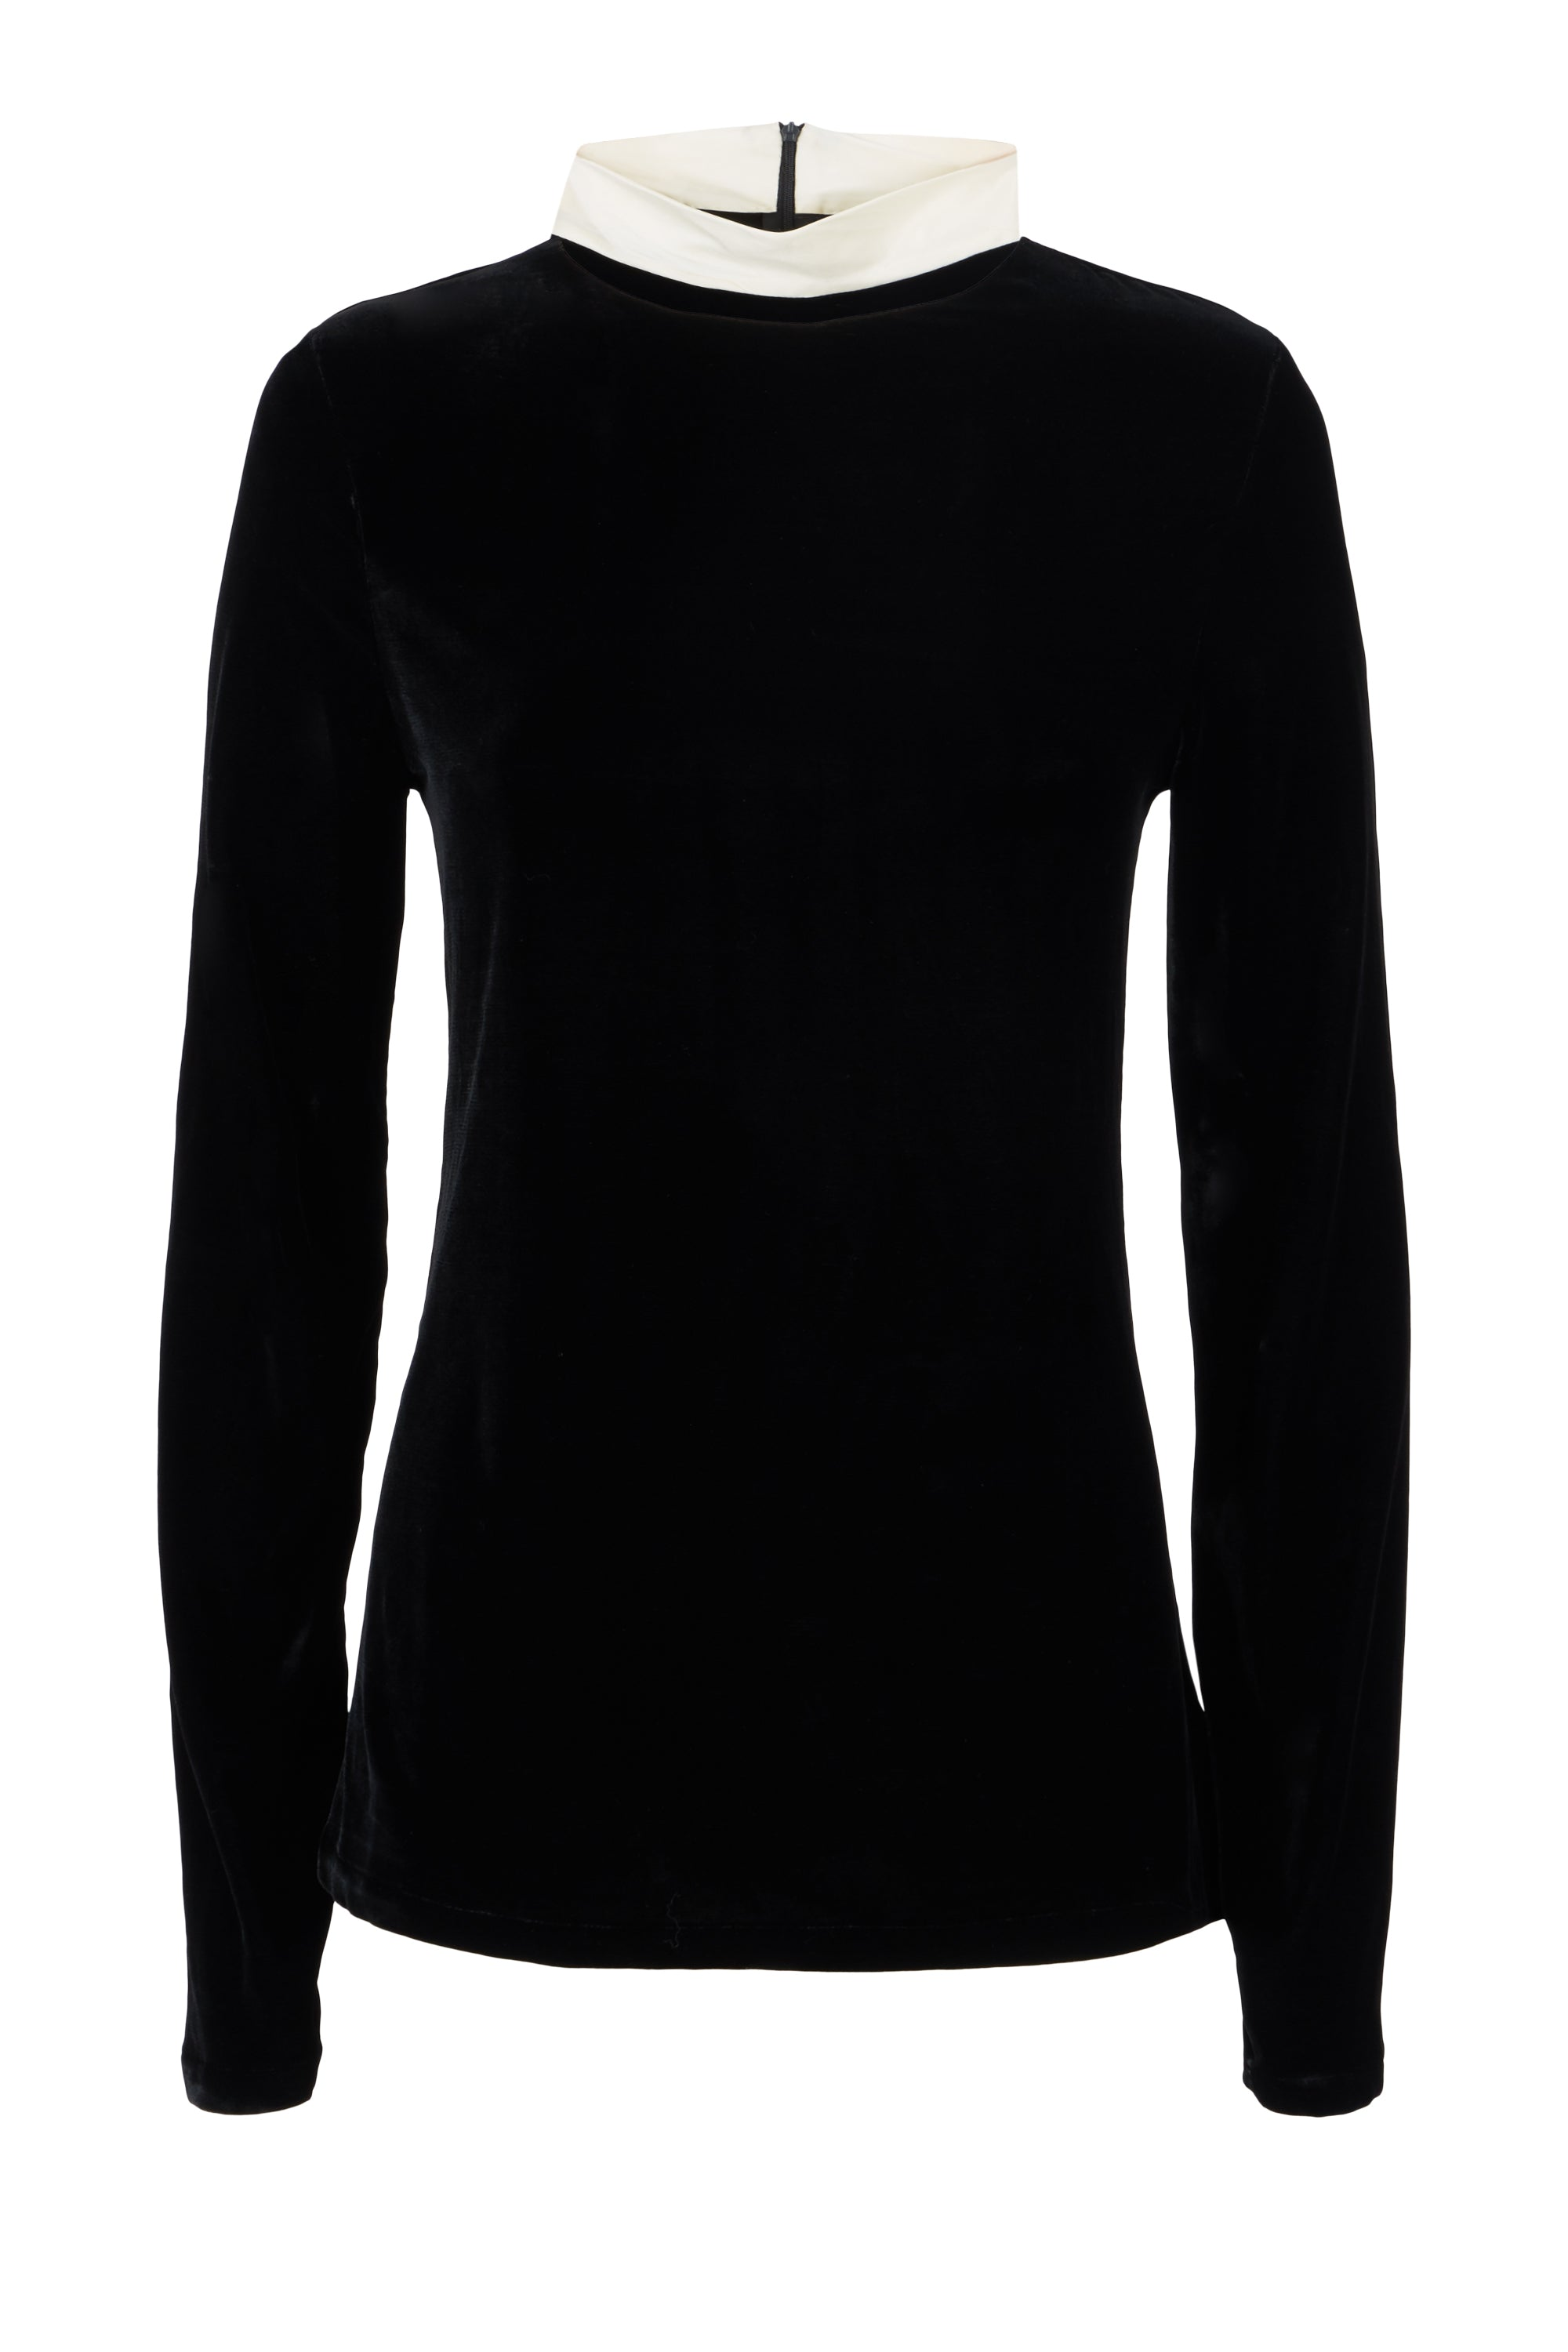 The Polo Neck - Black & Ivory Cream Velvet